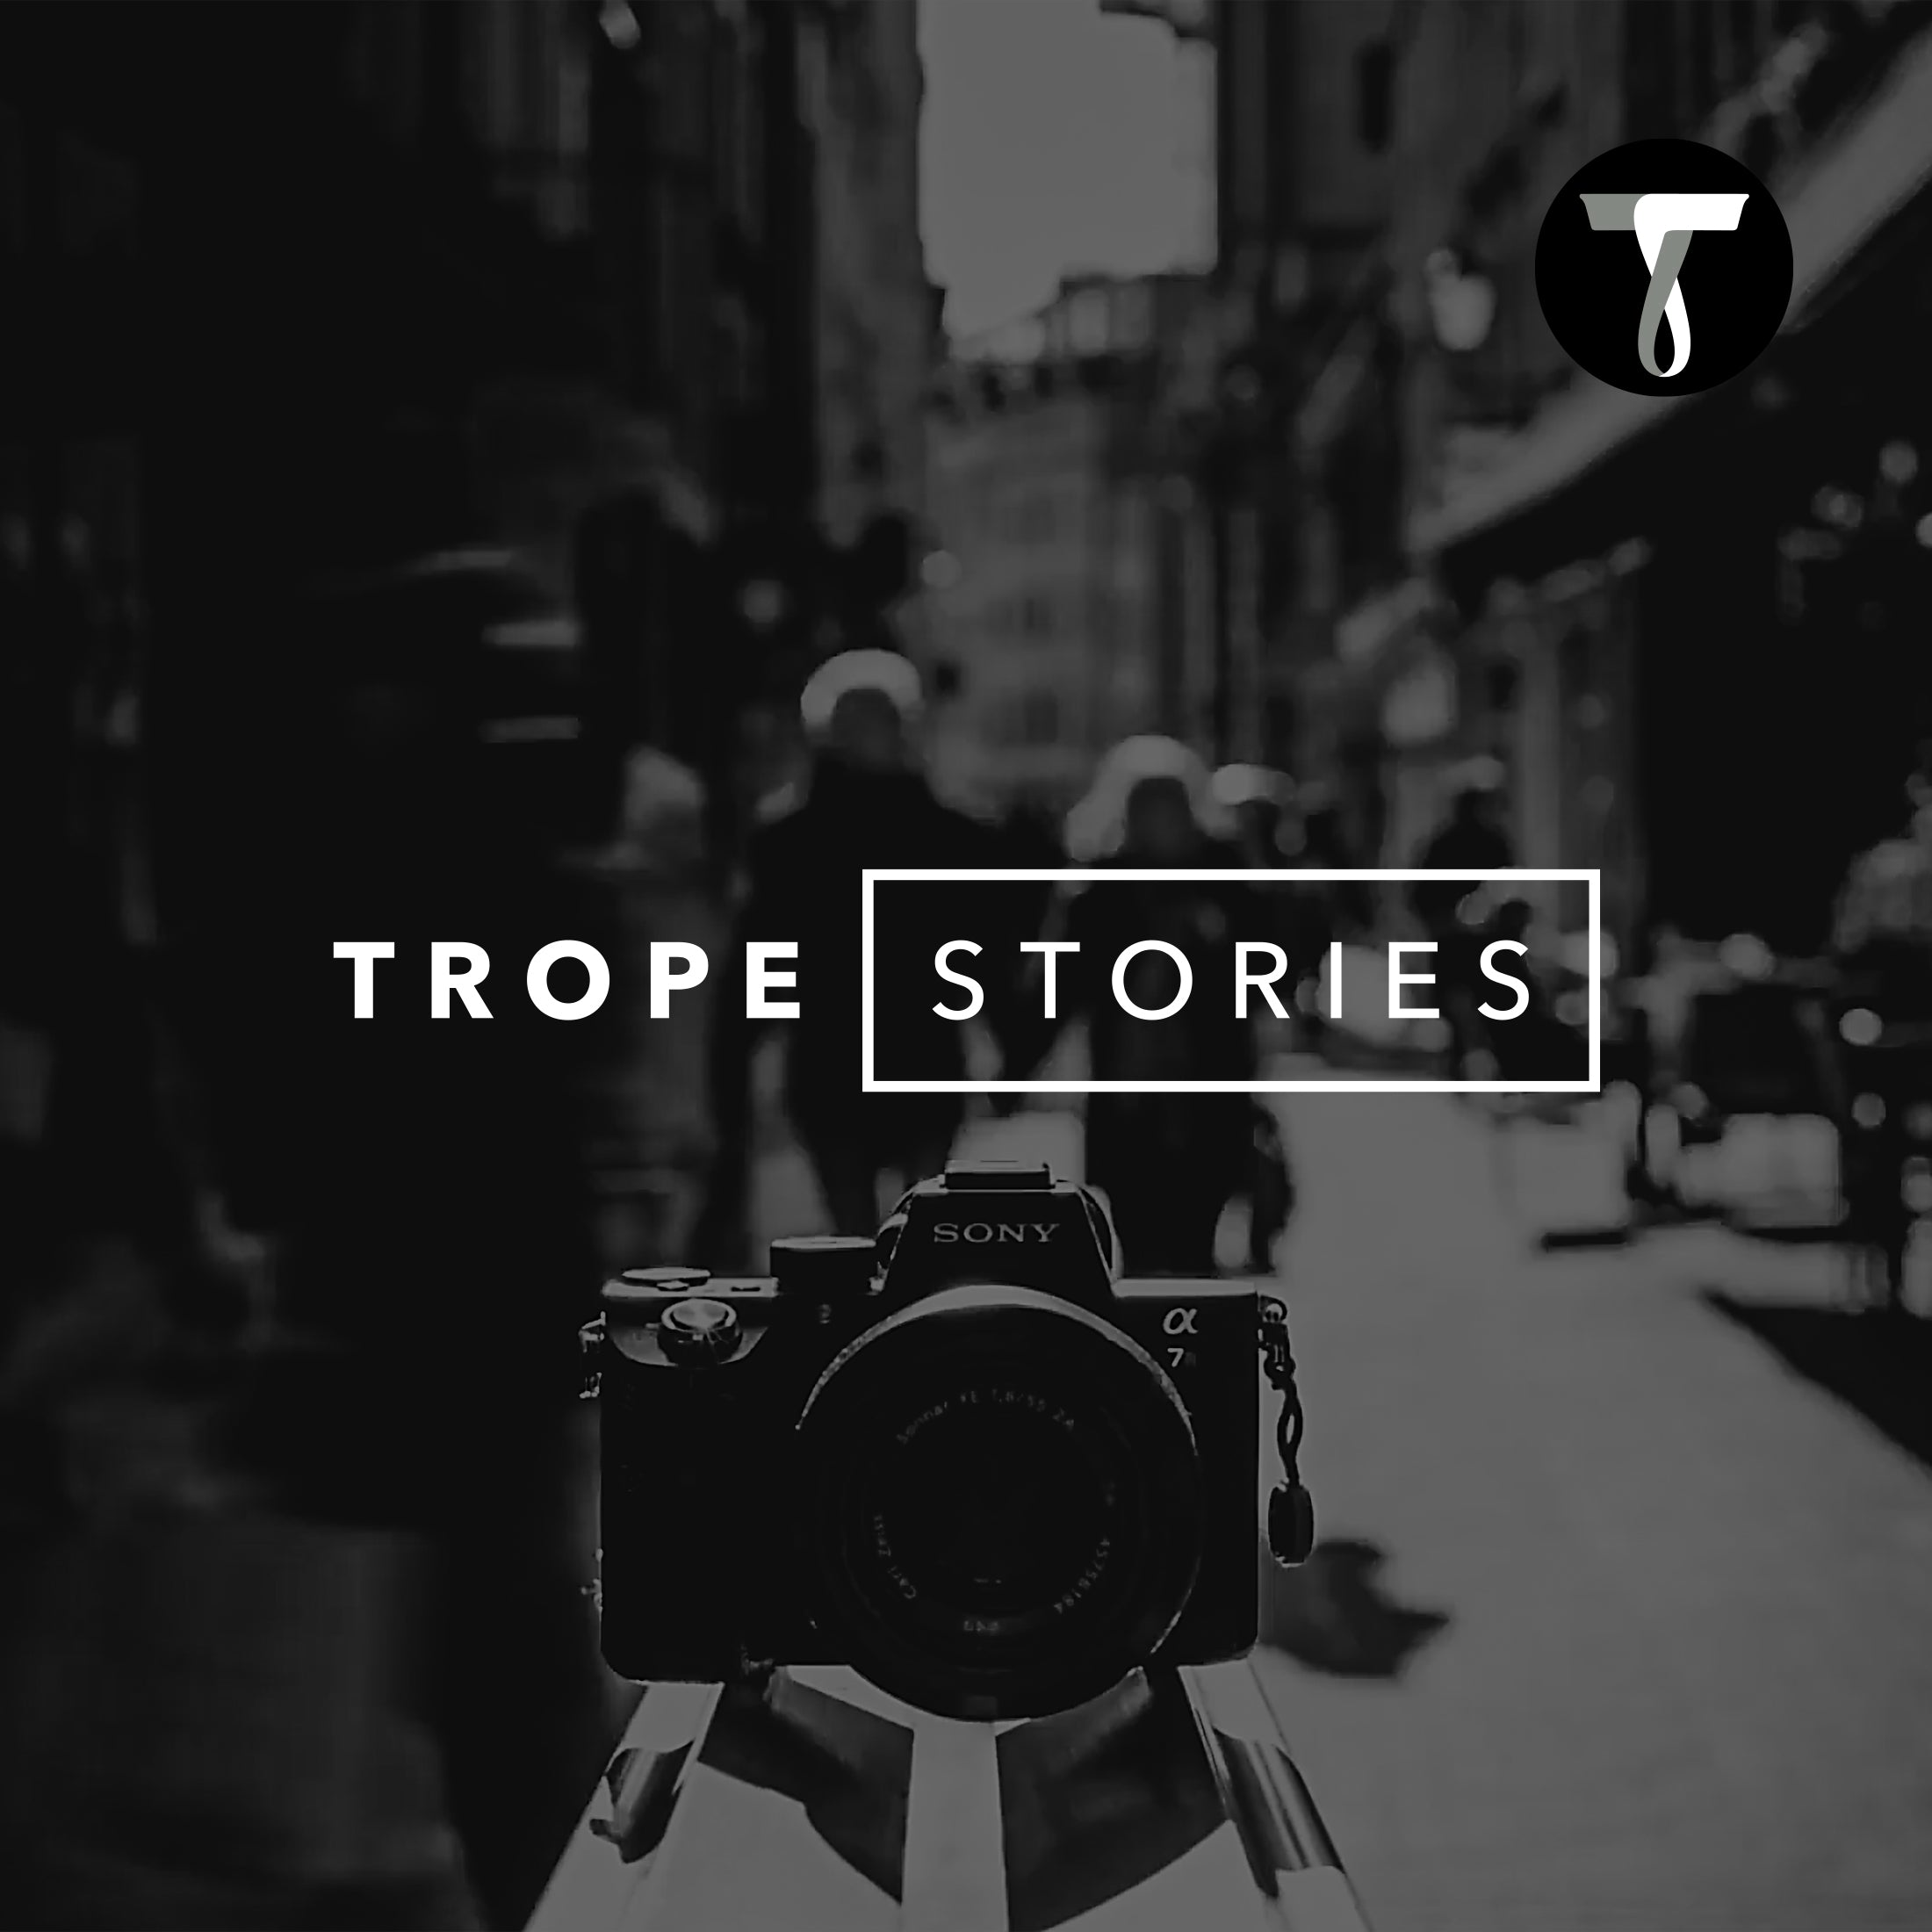 Trope Stories, Trope Publishing Co